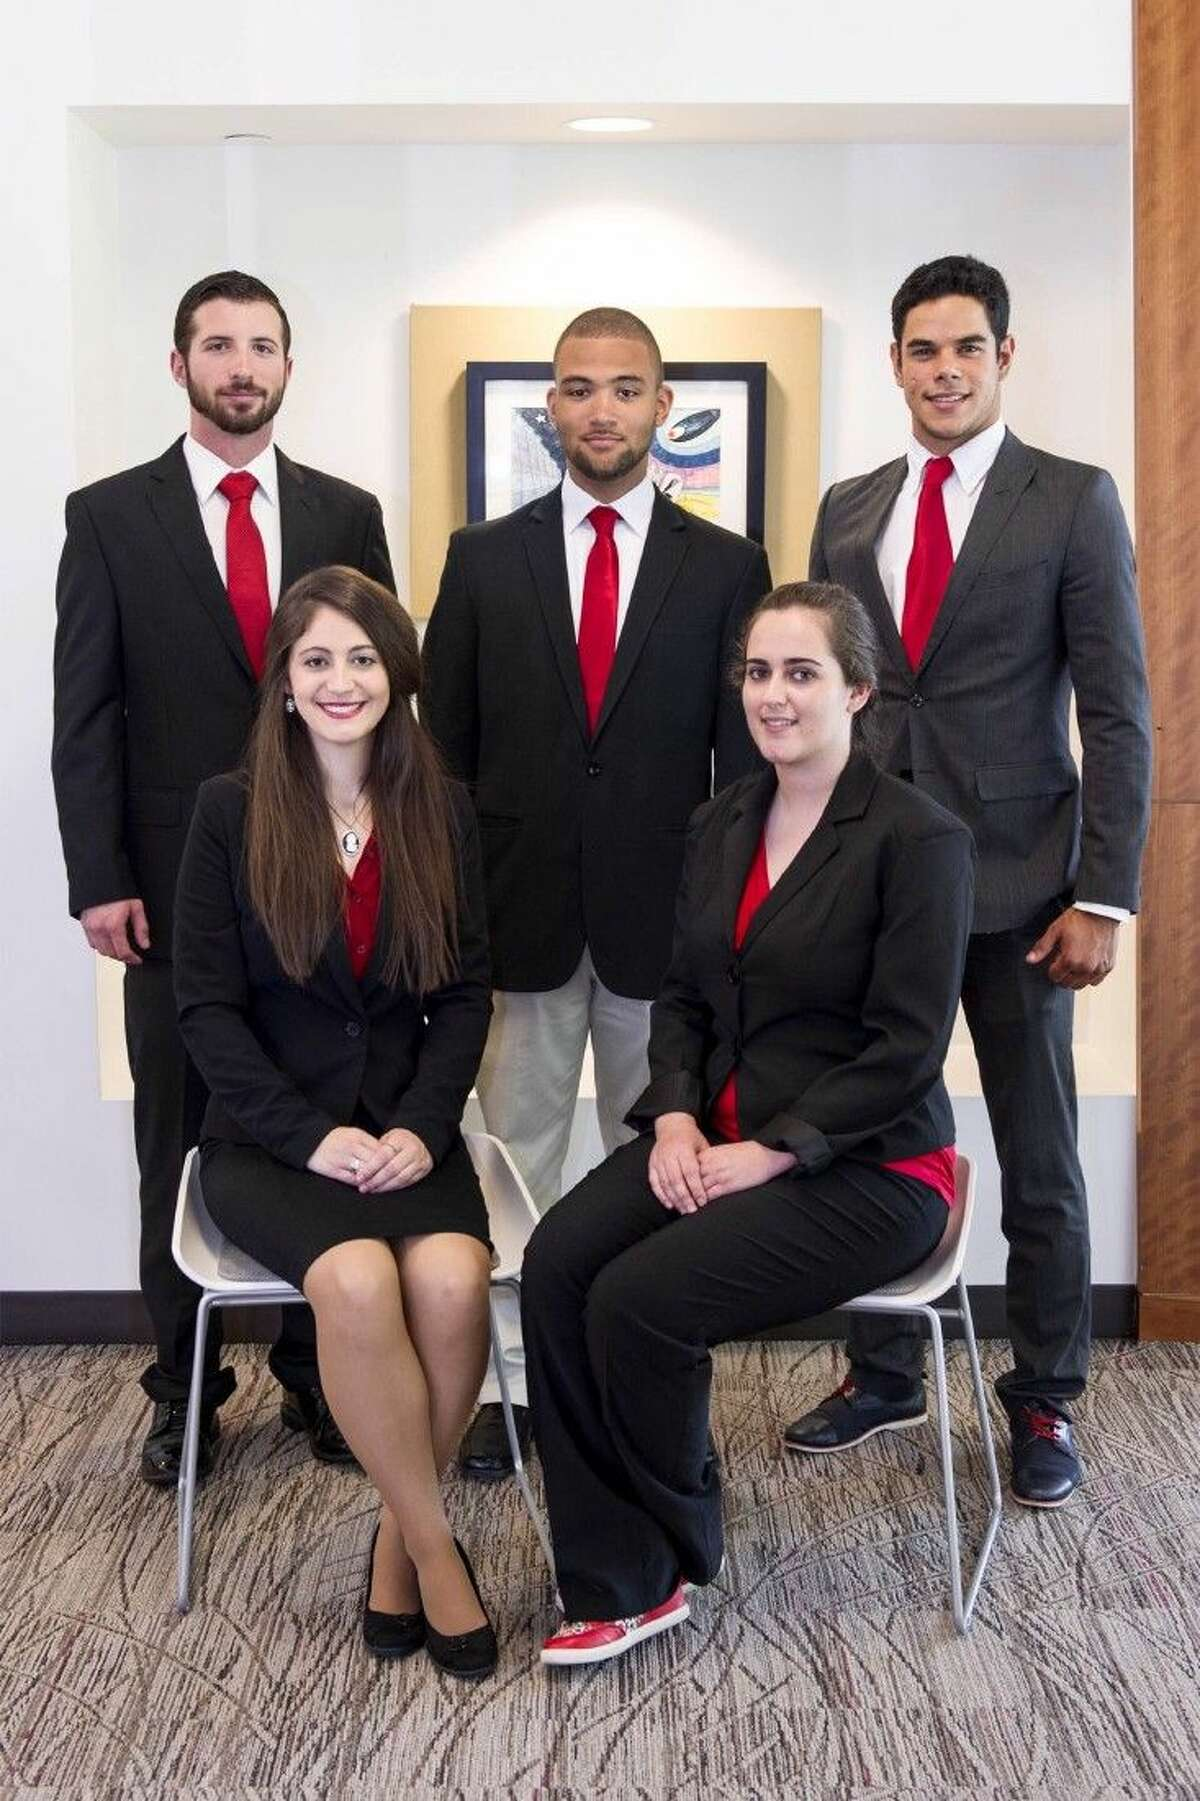 The group consist of Clay Provenza, vice president of Leadership; Jamel Rosemond, president; Raymundo Roig, vice president of Scholarship; in Front Left - Sidney Stockett, vice president of Service and Isabella Nobile, vice president of Fellowship.